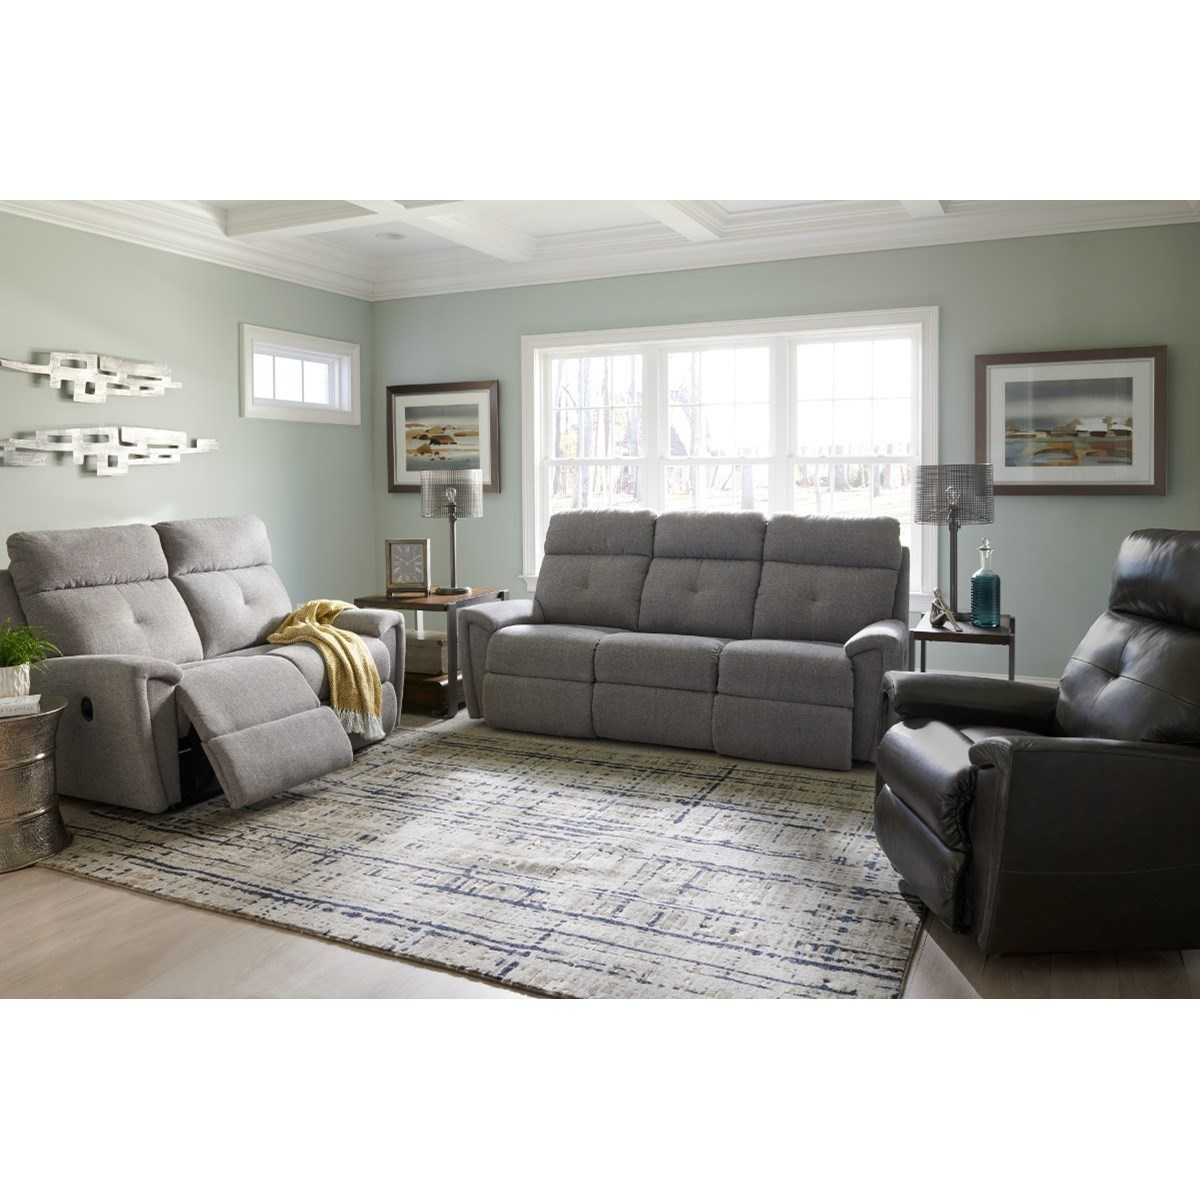 Douglas Power Reclining Living Room Group by La-Z-Boy at Sparks HomeStore